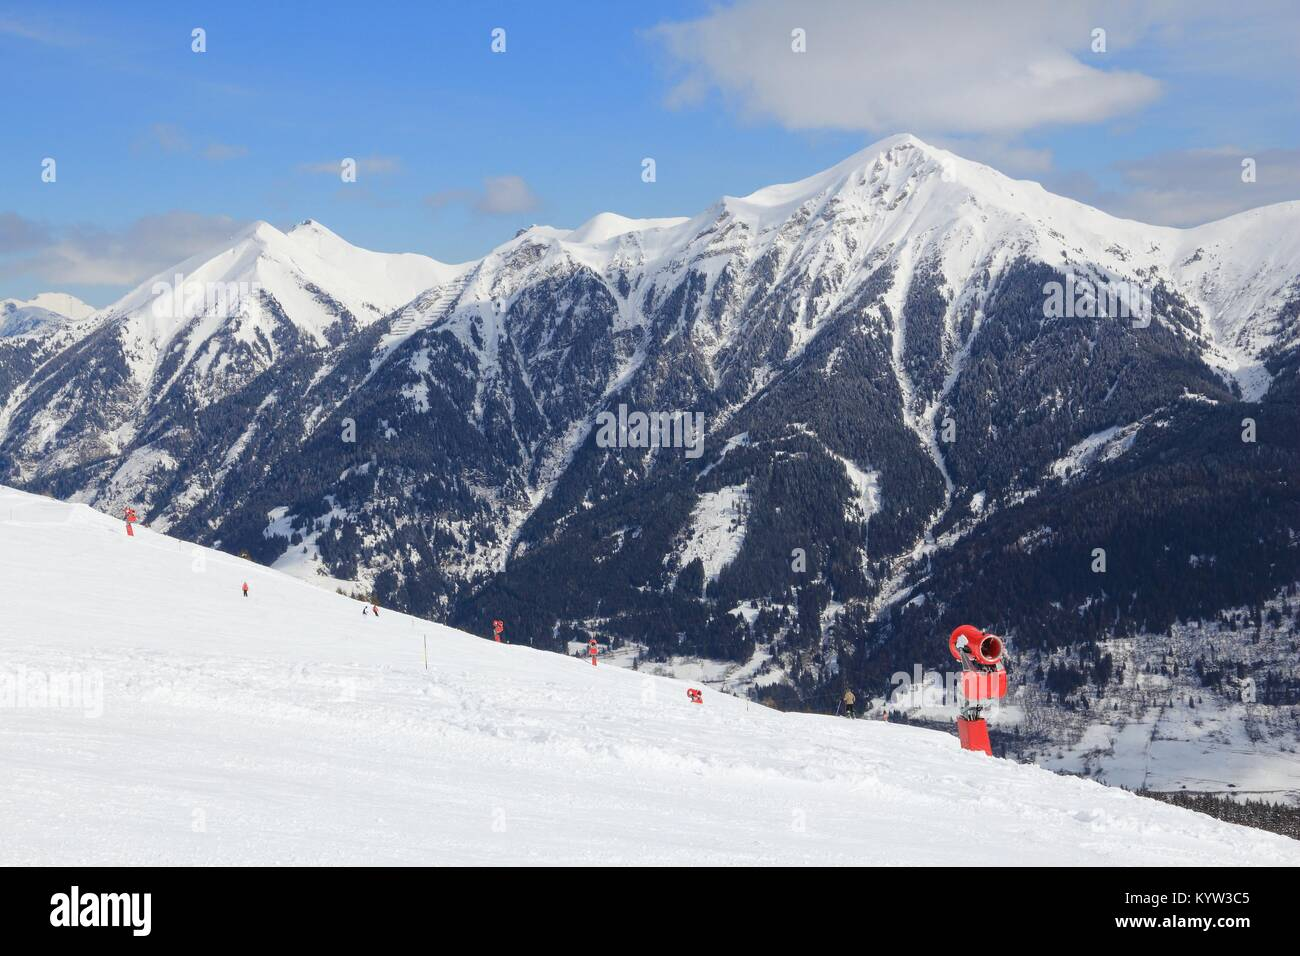 ski resort in austria - bad gastein in high tauern (hohe tauern